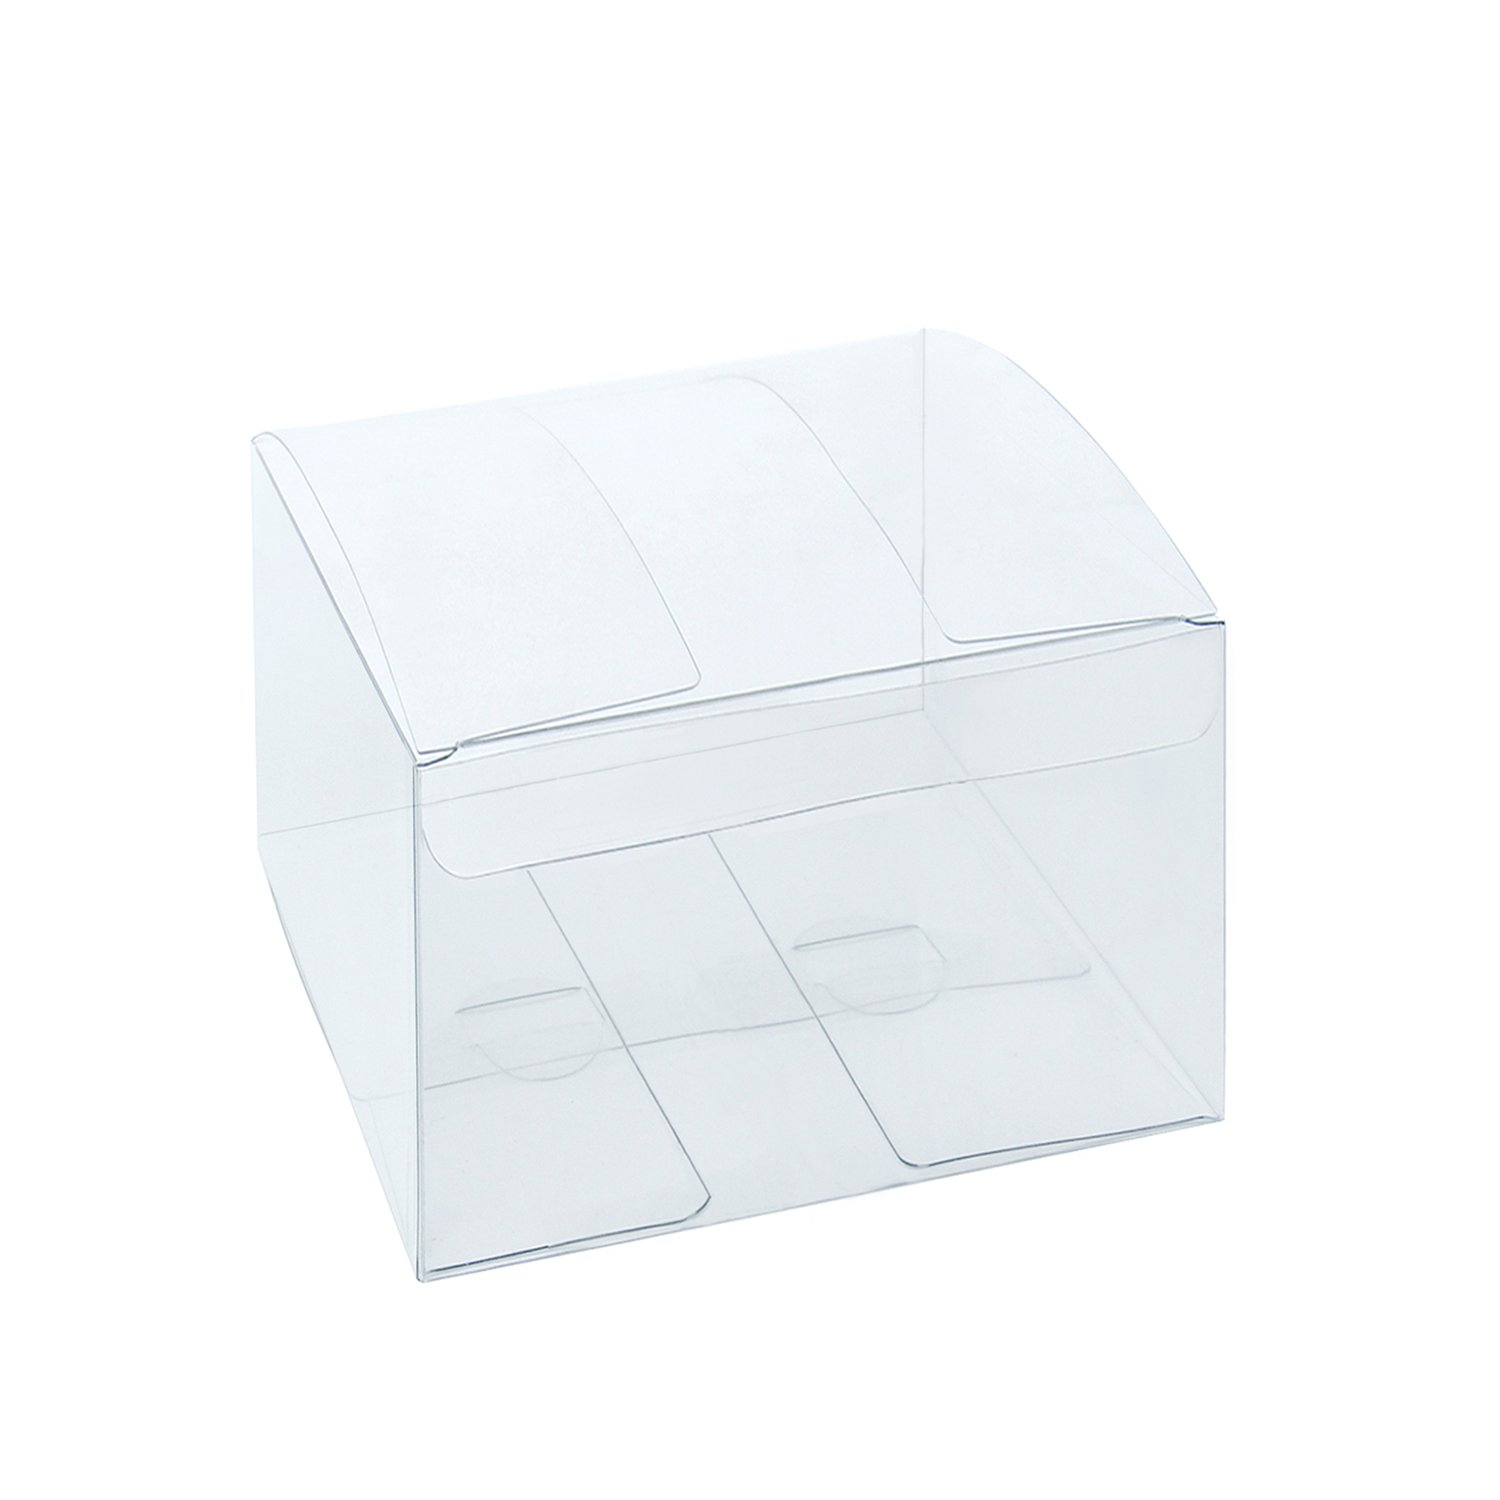 """LaRibbons 50Pcs PET Clear Box, Transparent Boxes, Candy Box, Clear Gift Boxes for Wedding, Party and Baby Shower Favors, 4"""" L x 4"""" W x 2.5"""" H"""